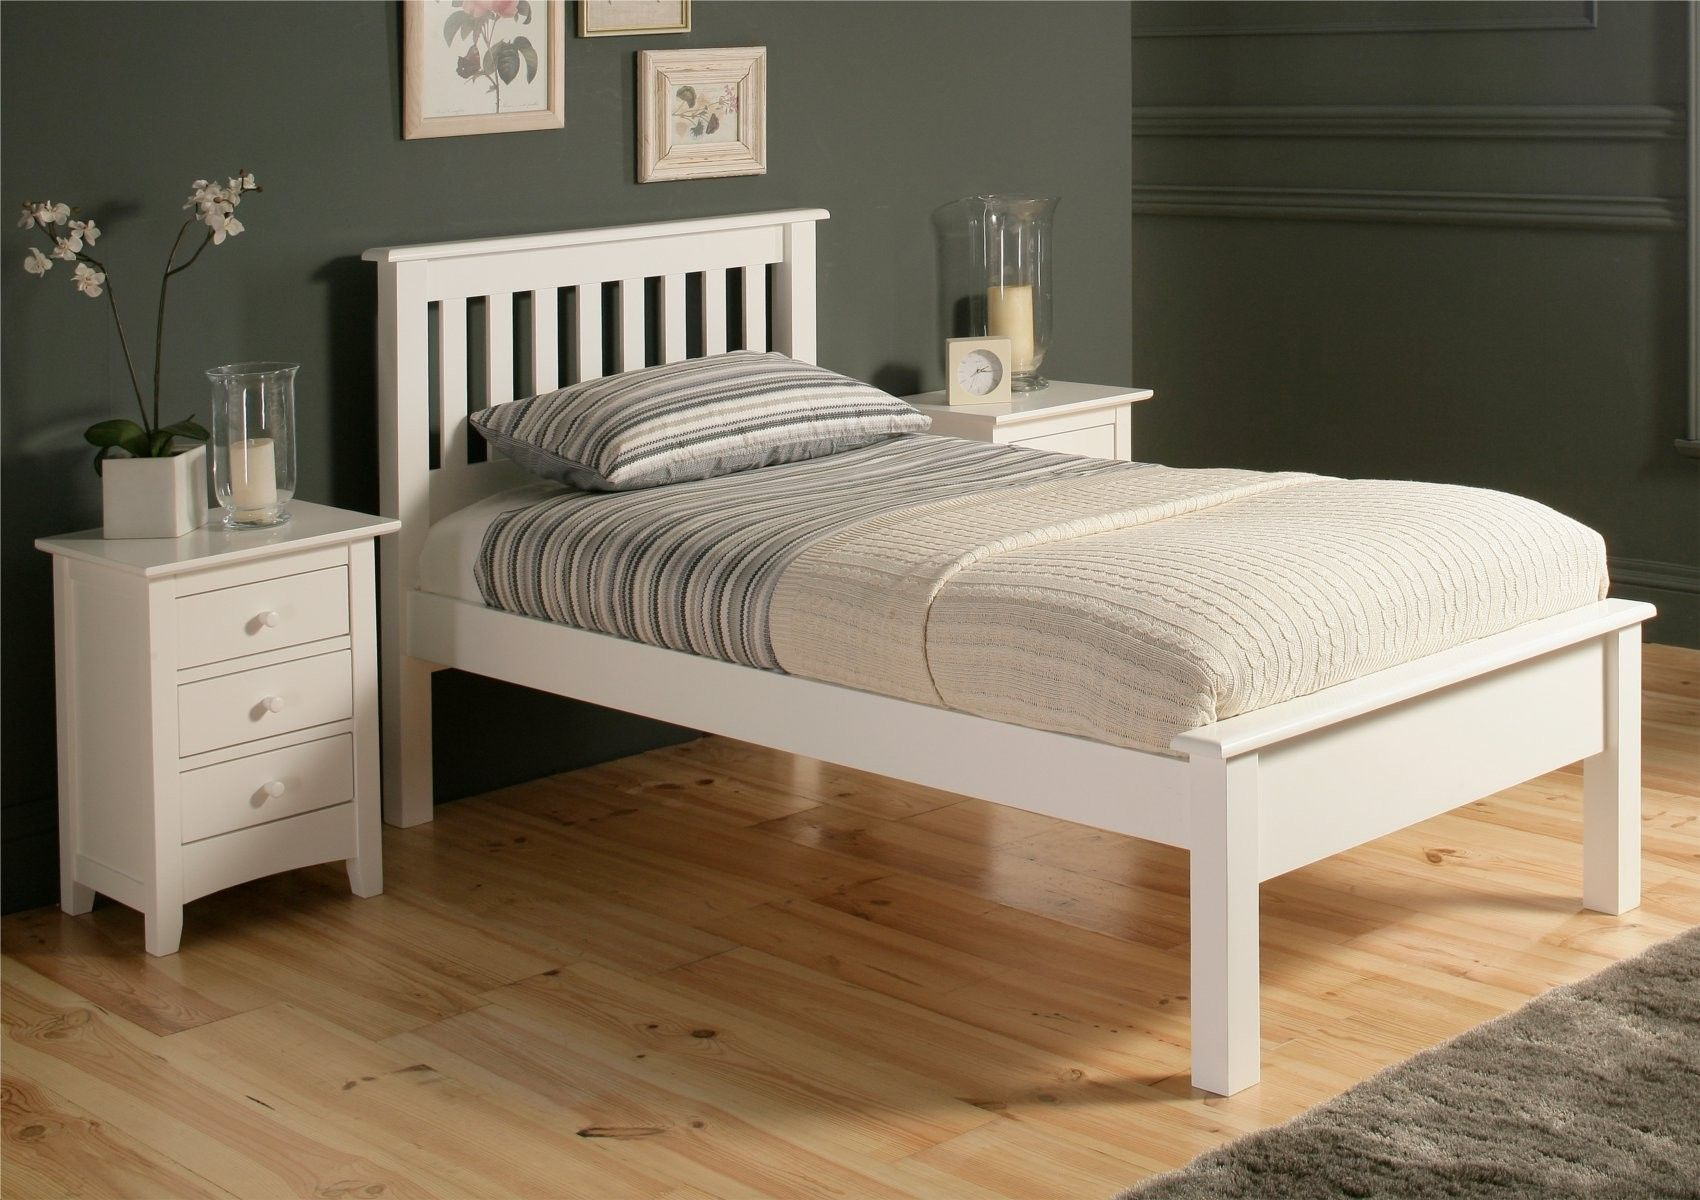 the low foot end design on this classic shaker style bed. Black Bedroom Furniture Sets. Home Design Ideas